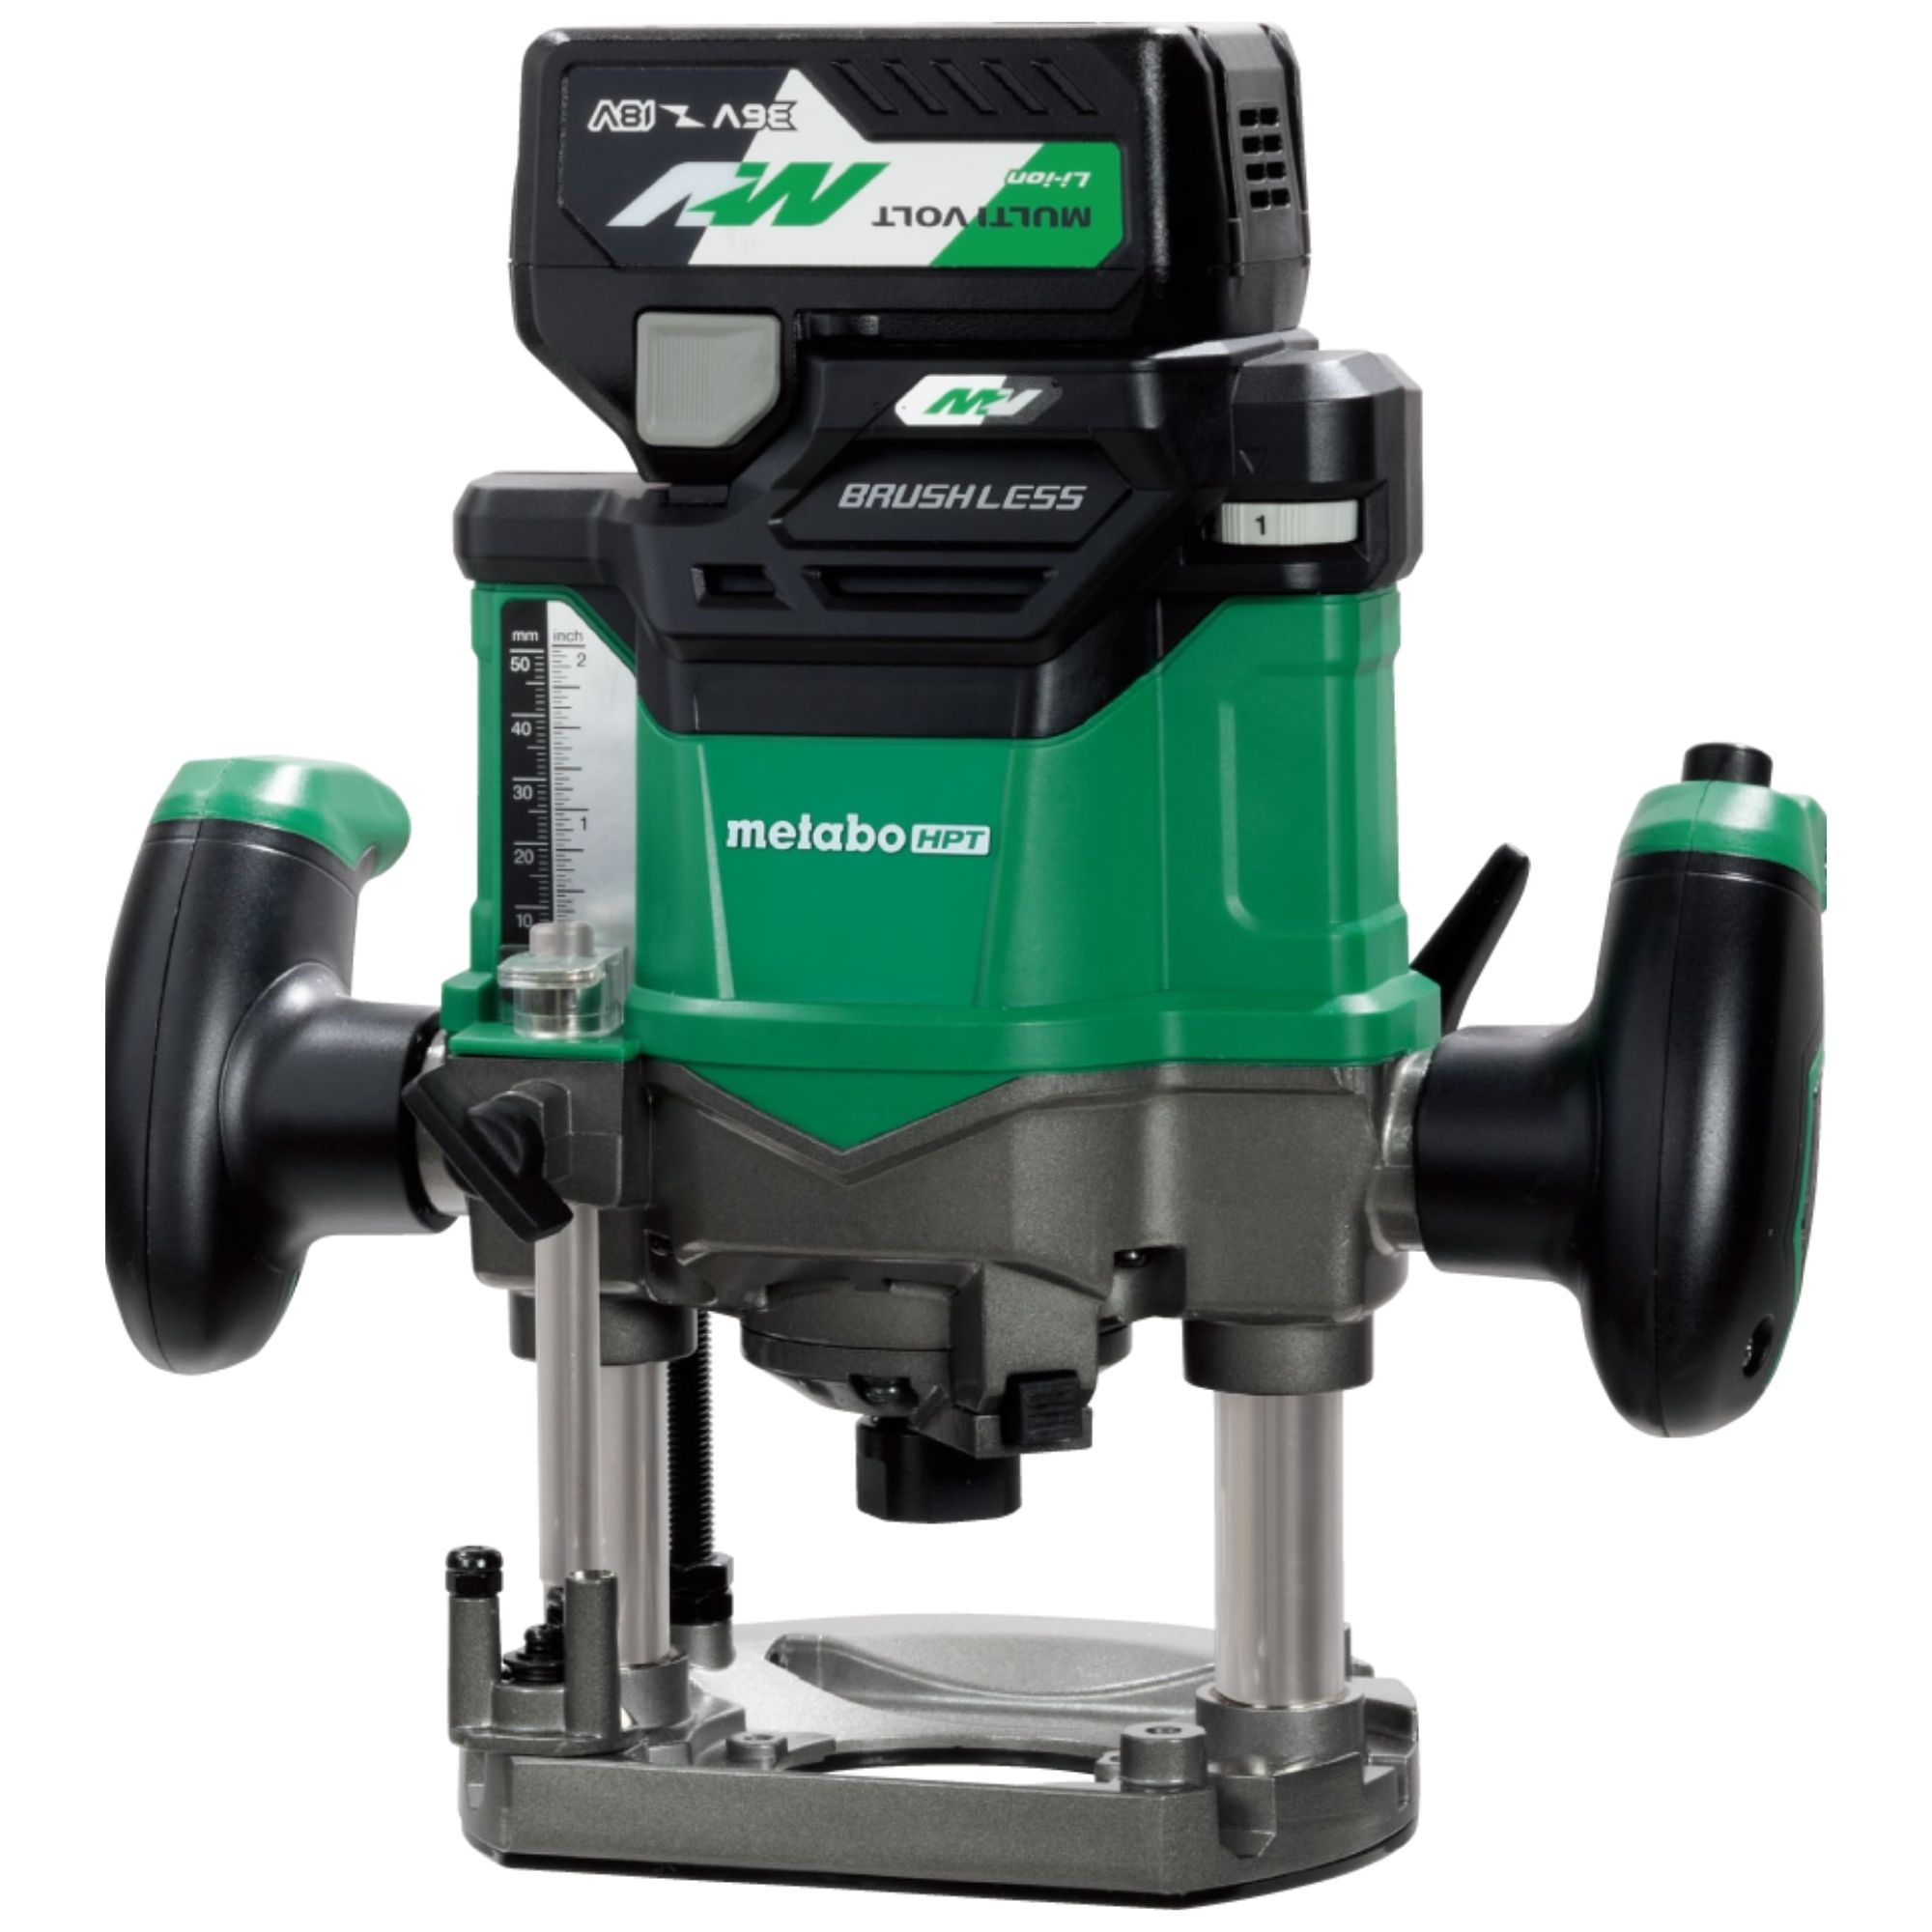 Cordless Plunge Router